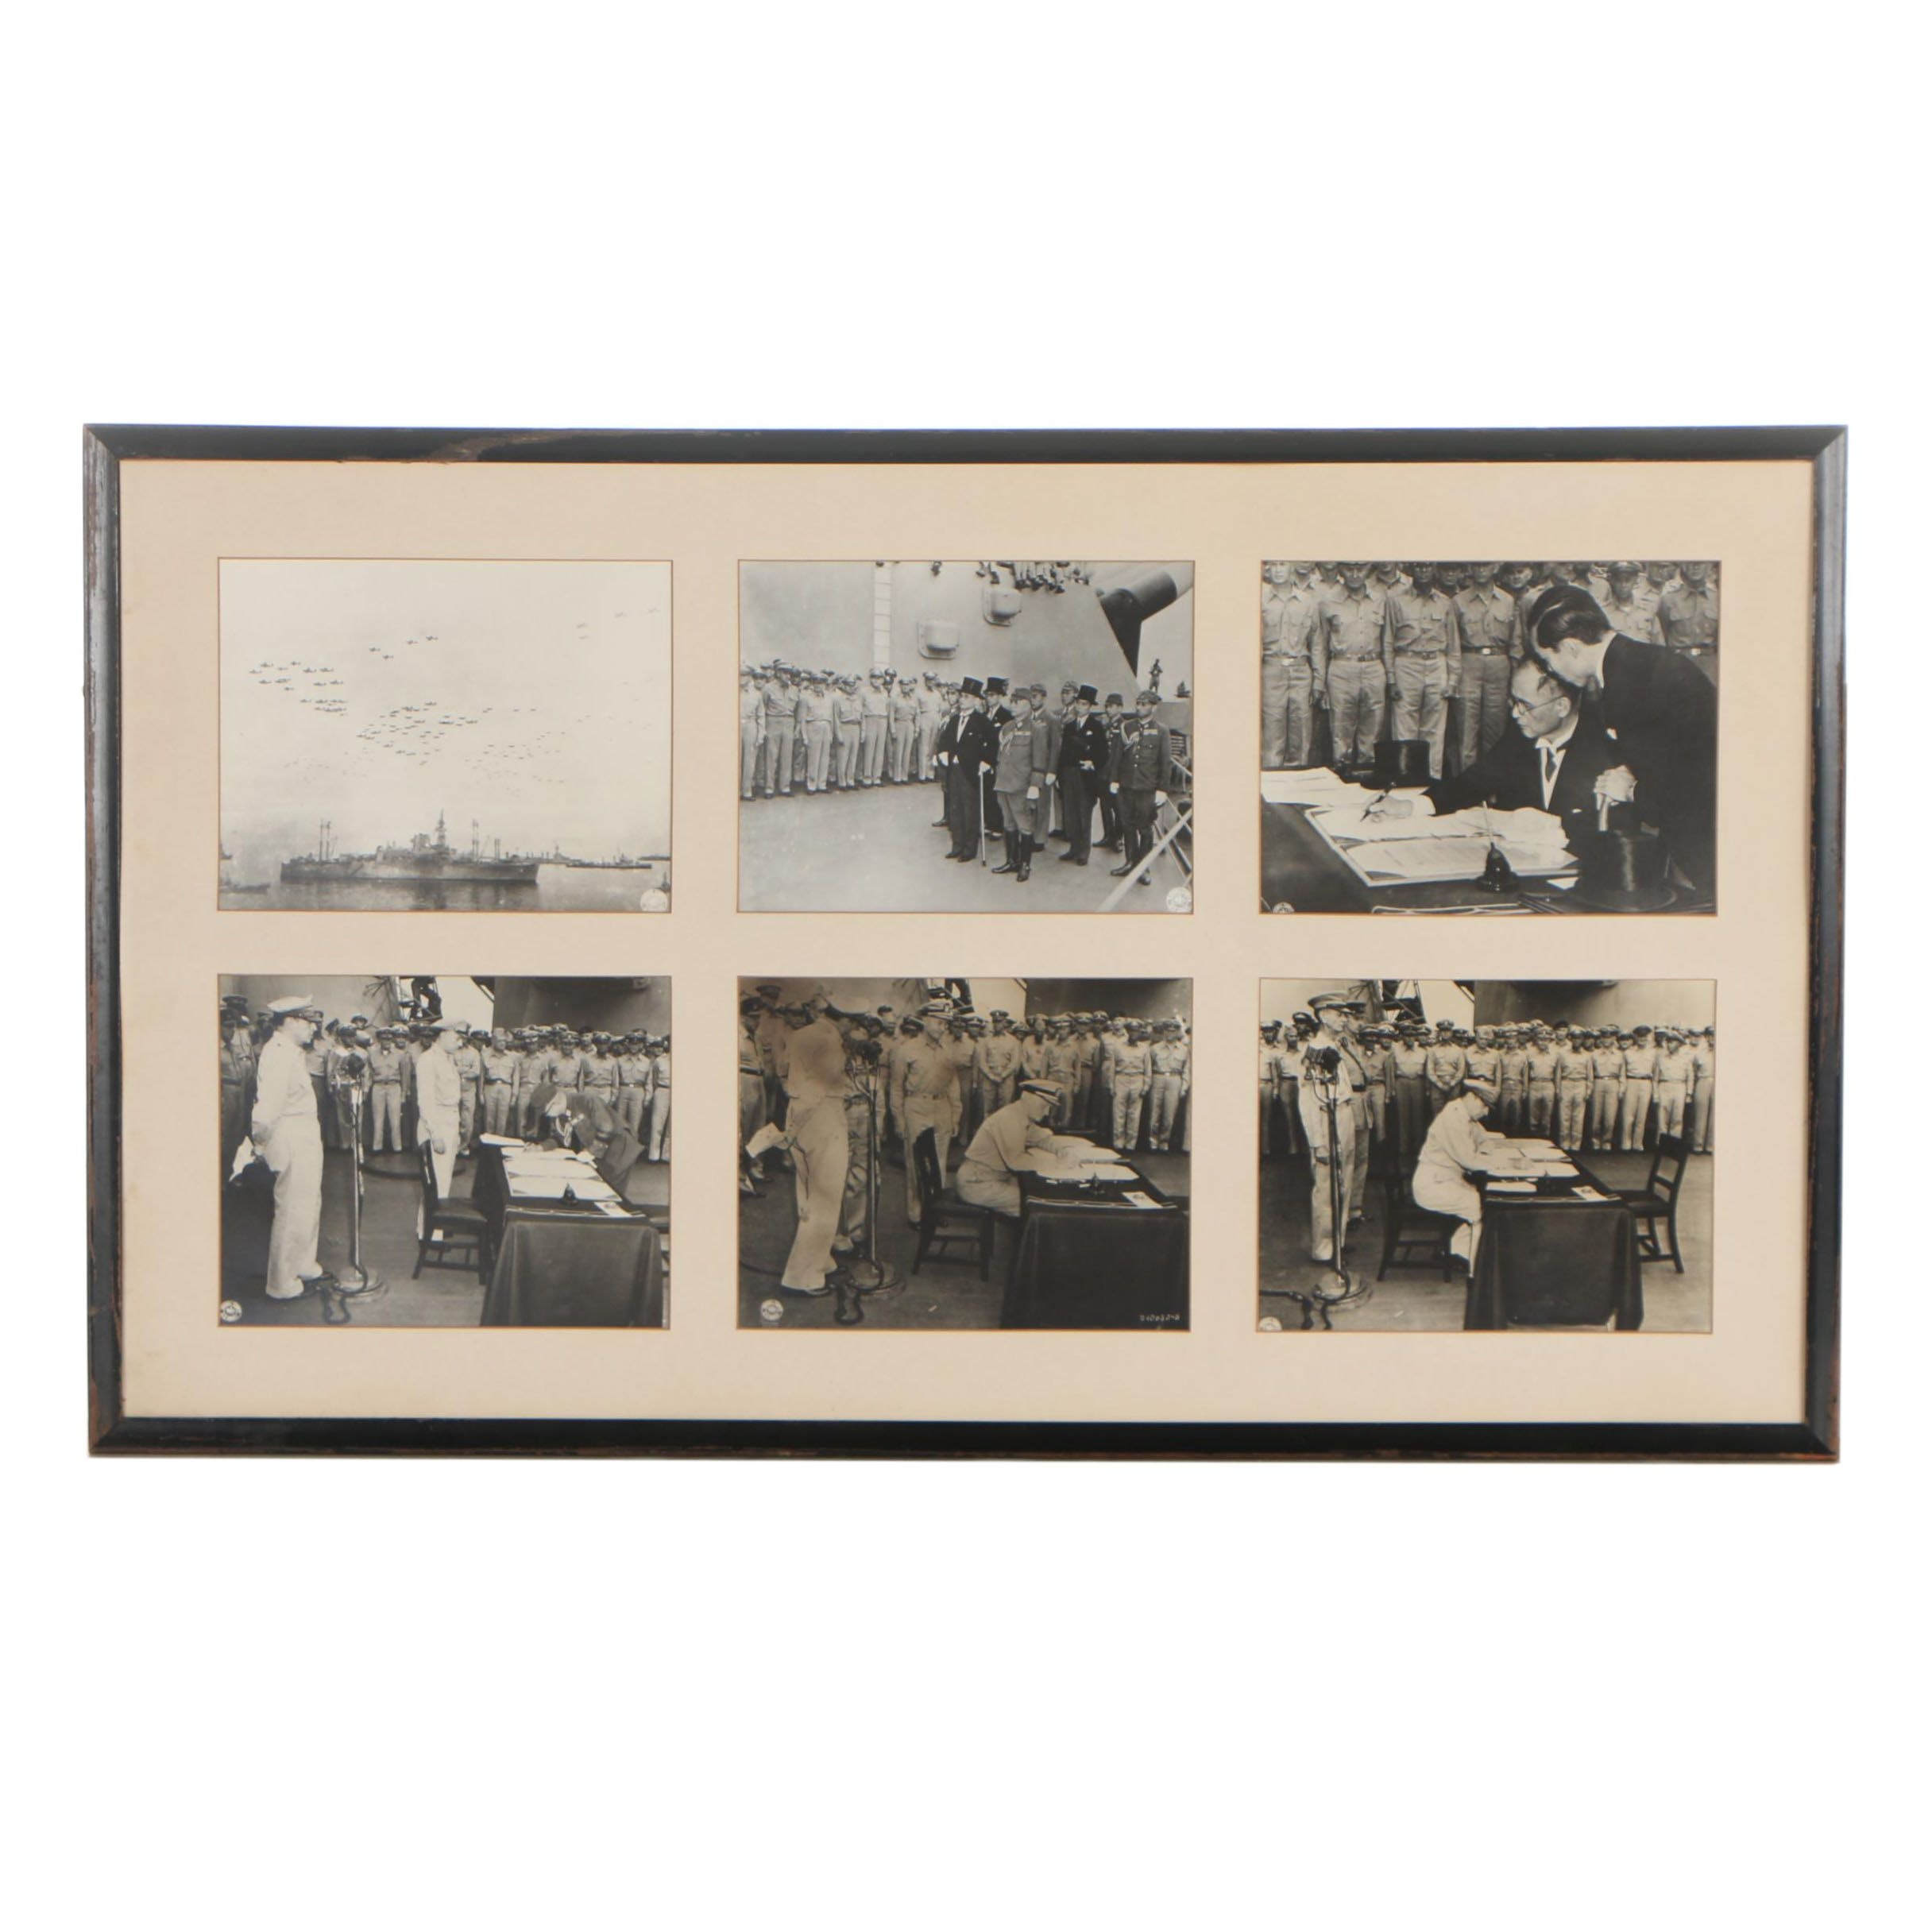 U.S. Army Signal Corps Silver Gelatin Photographs from WWII